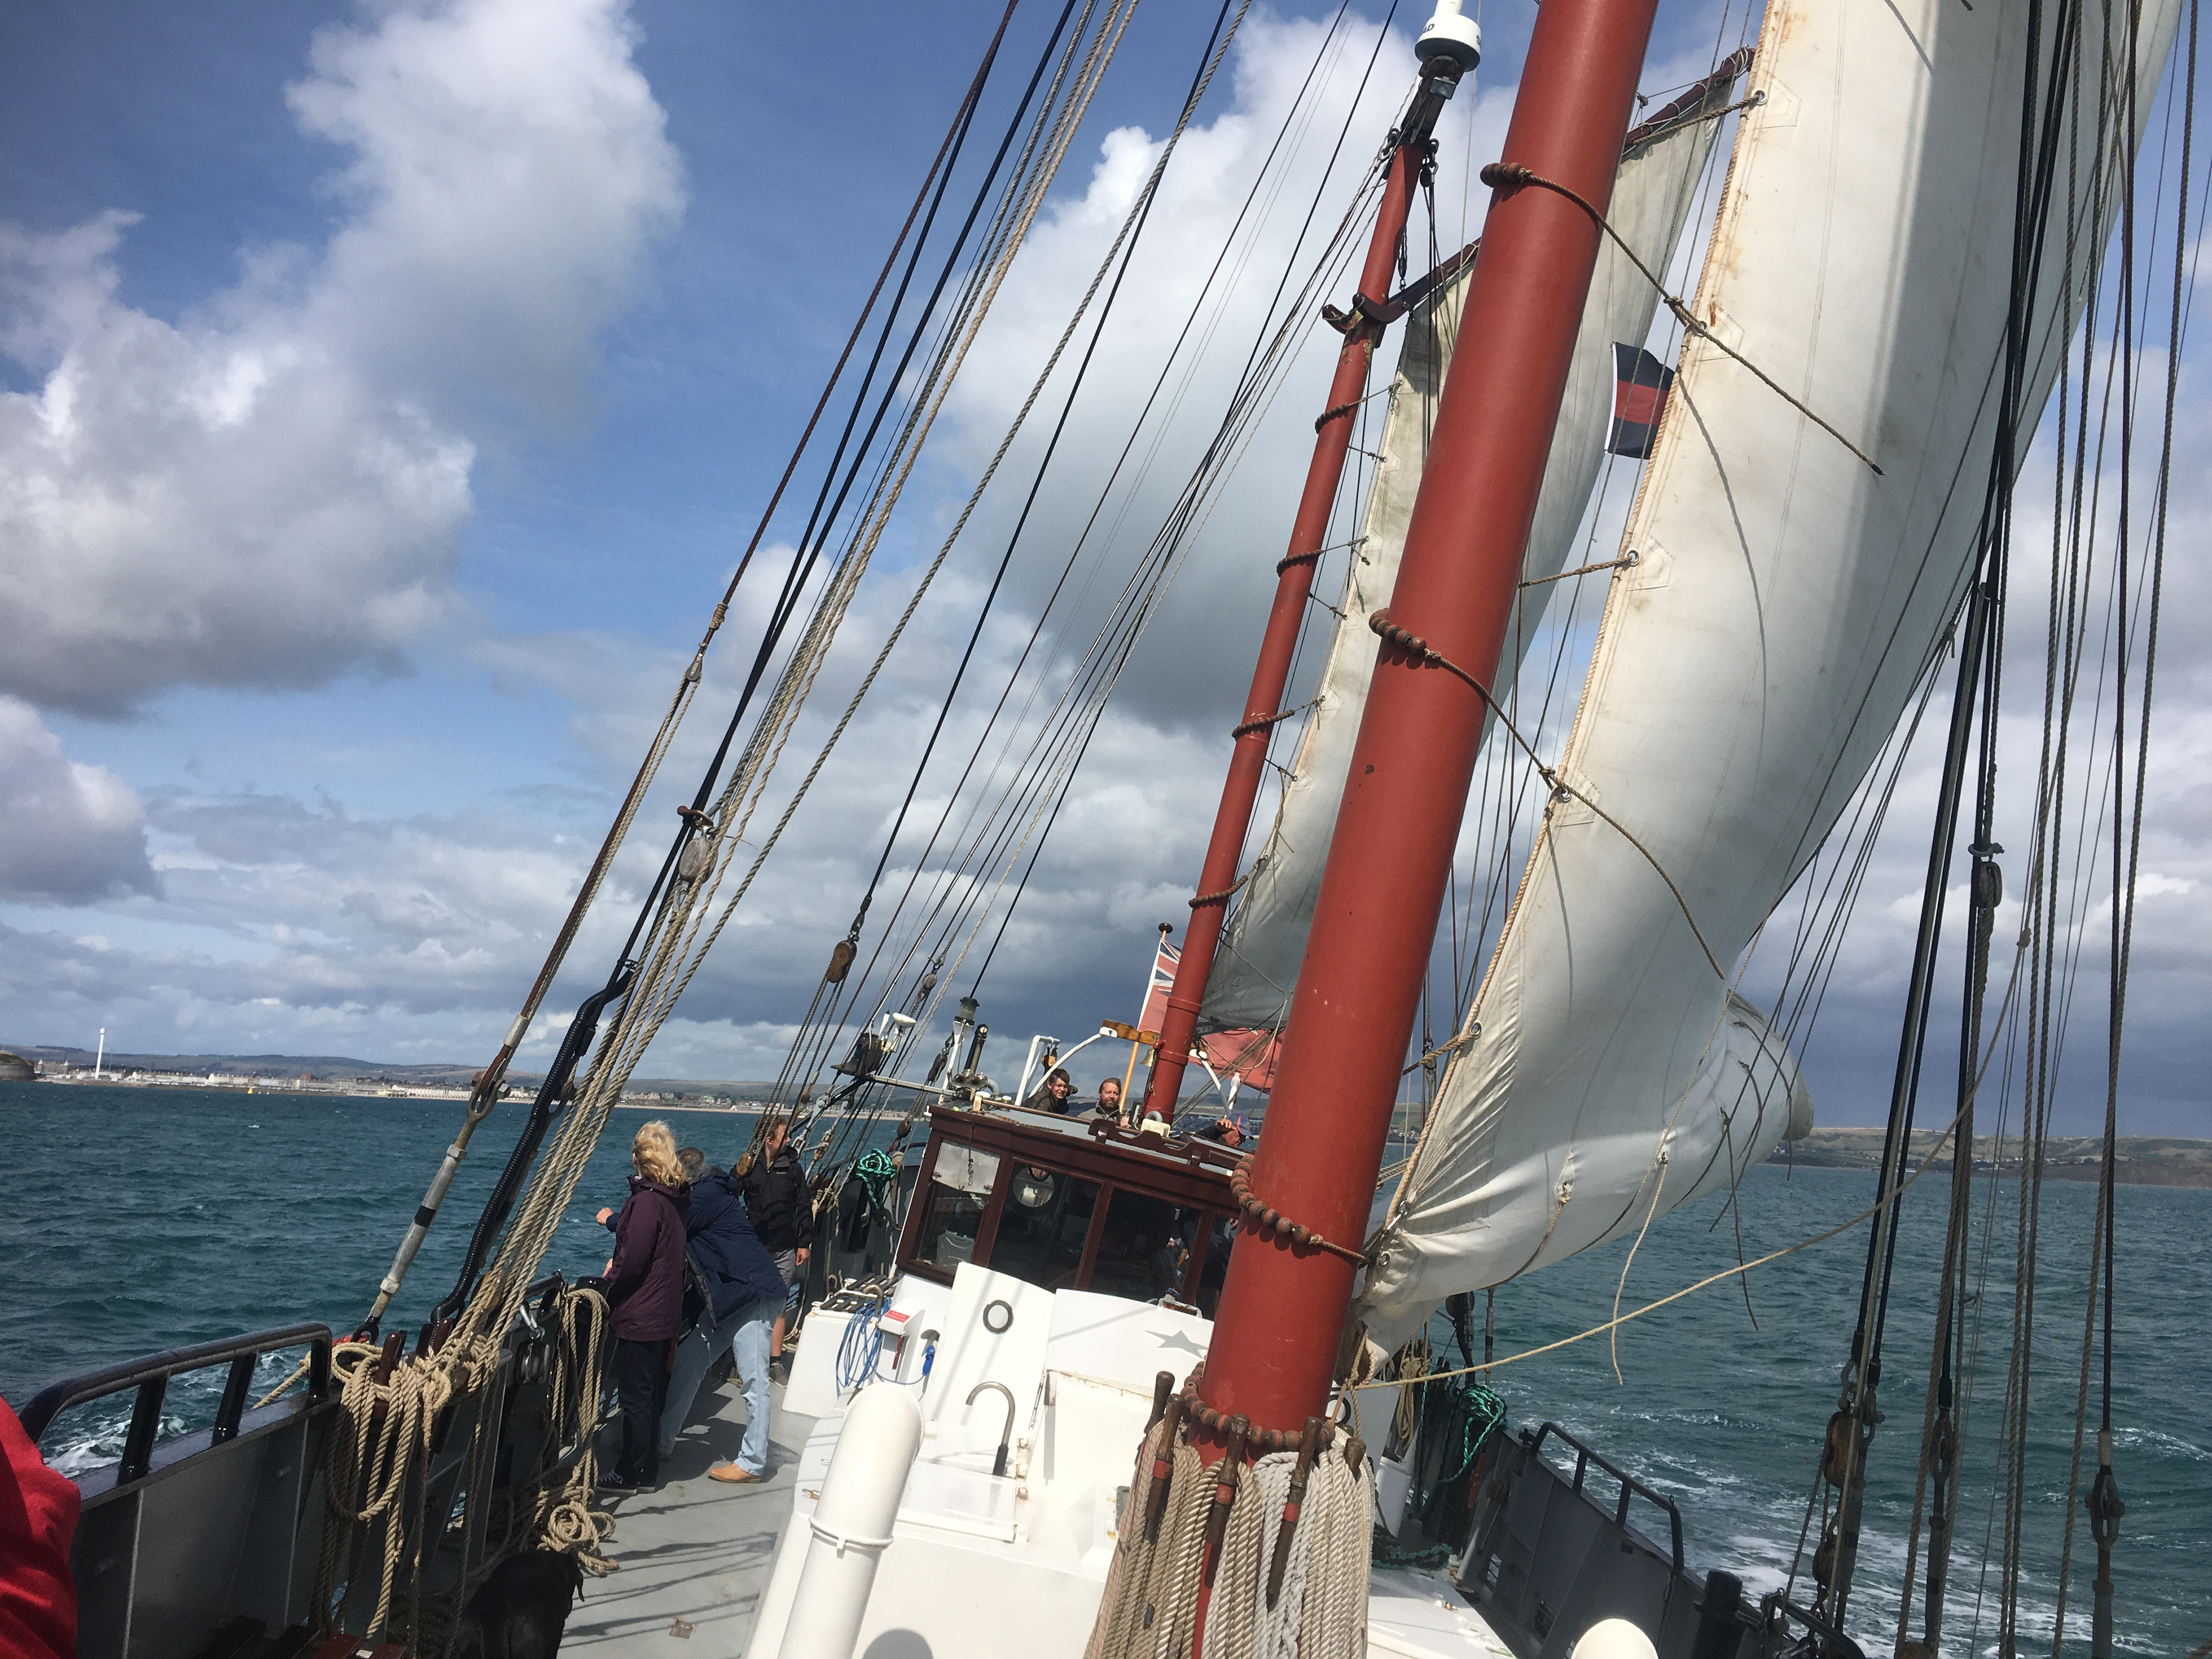 Moonfleet Sailing in Dorset at sea